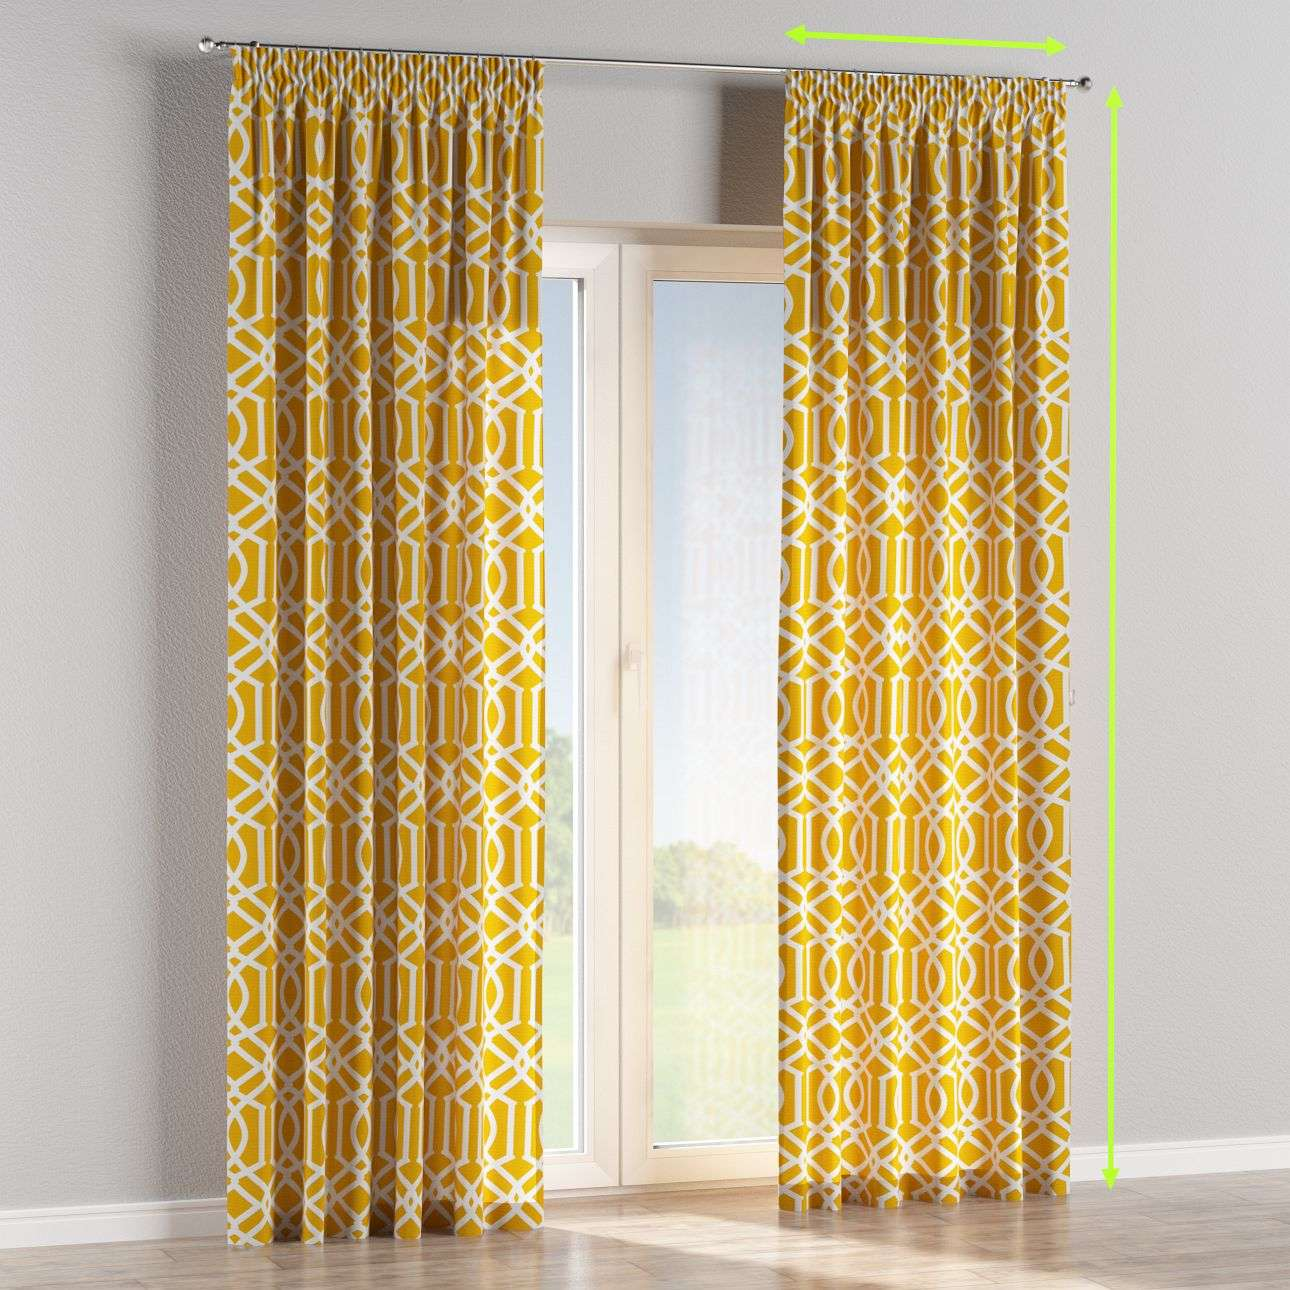 Pencil pleat curtain in collection Comics/Geometrical, fabric: 135-09